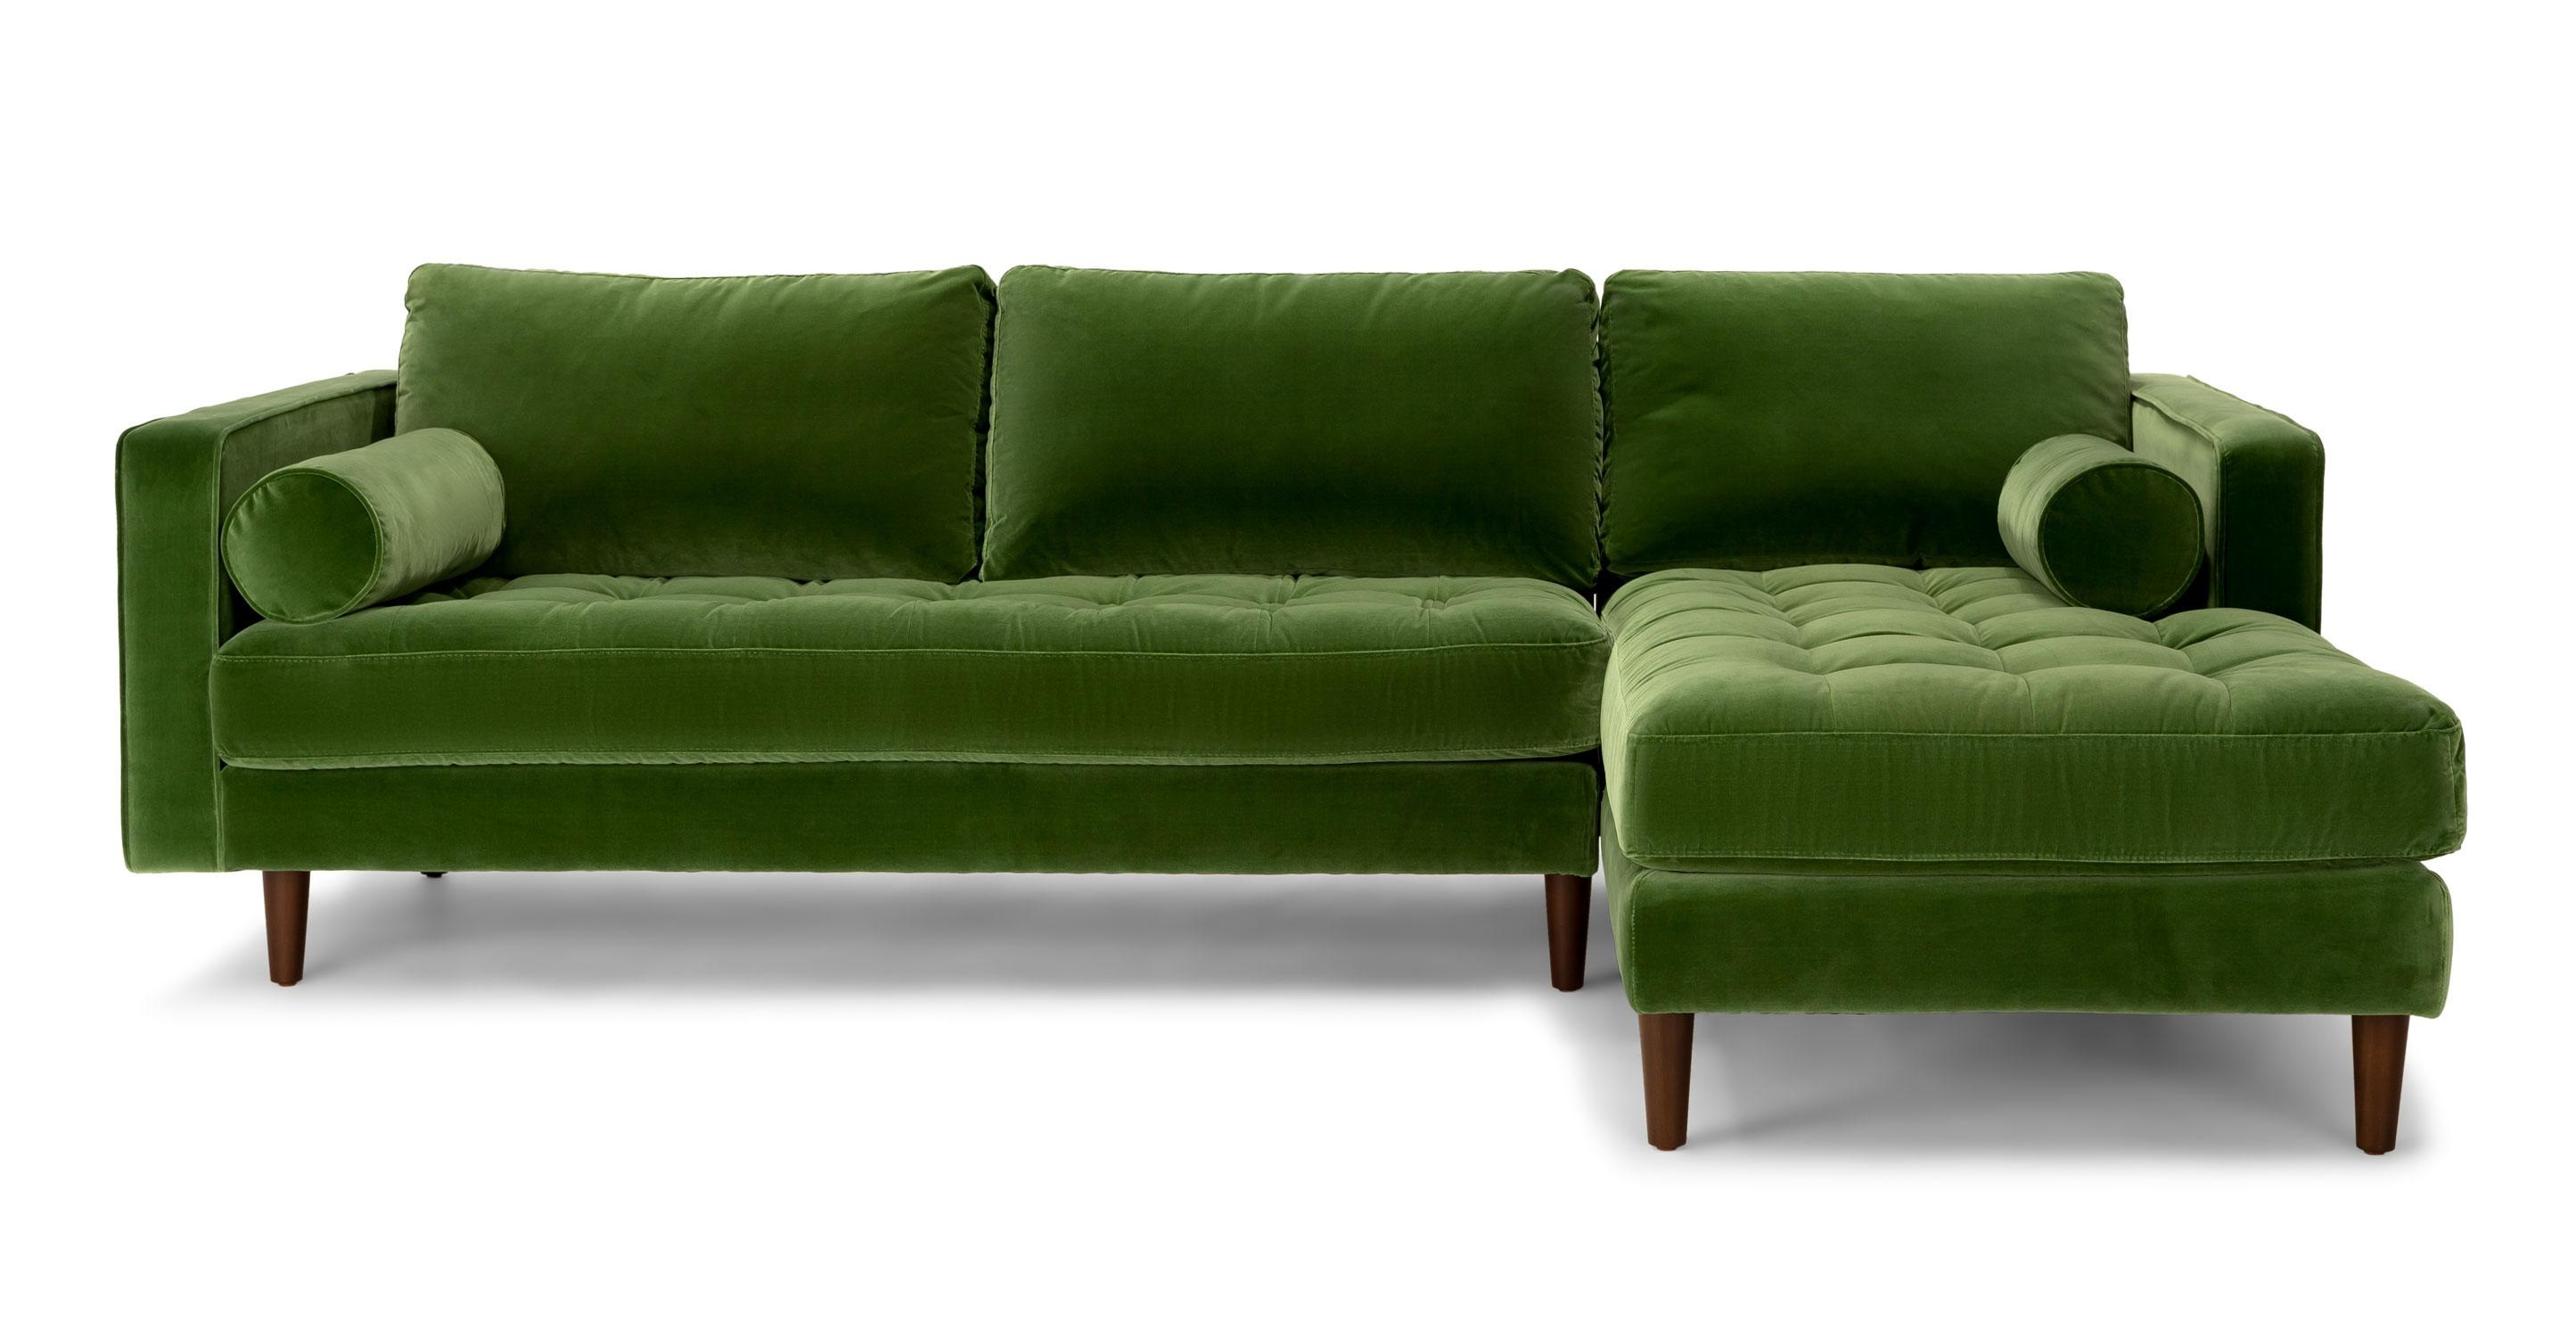 Sofas Center : Excellent Greenectionalofa Photos Inspirations Best Inside Green Sectional Sofa With Chaise (Image 13 of 15)